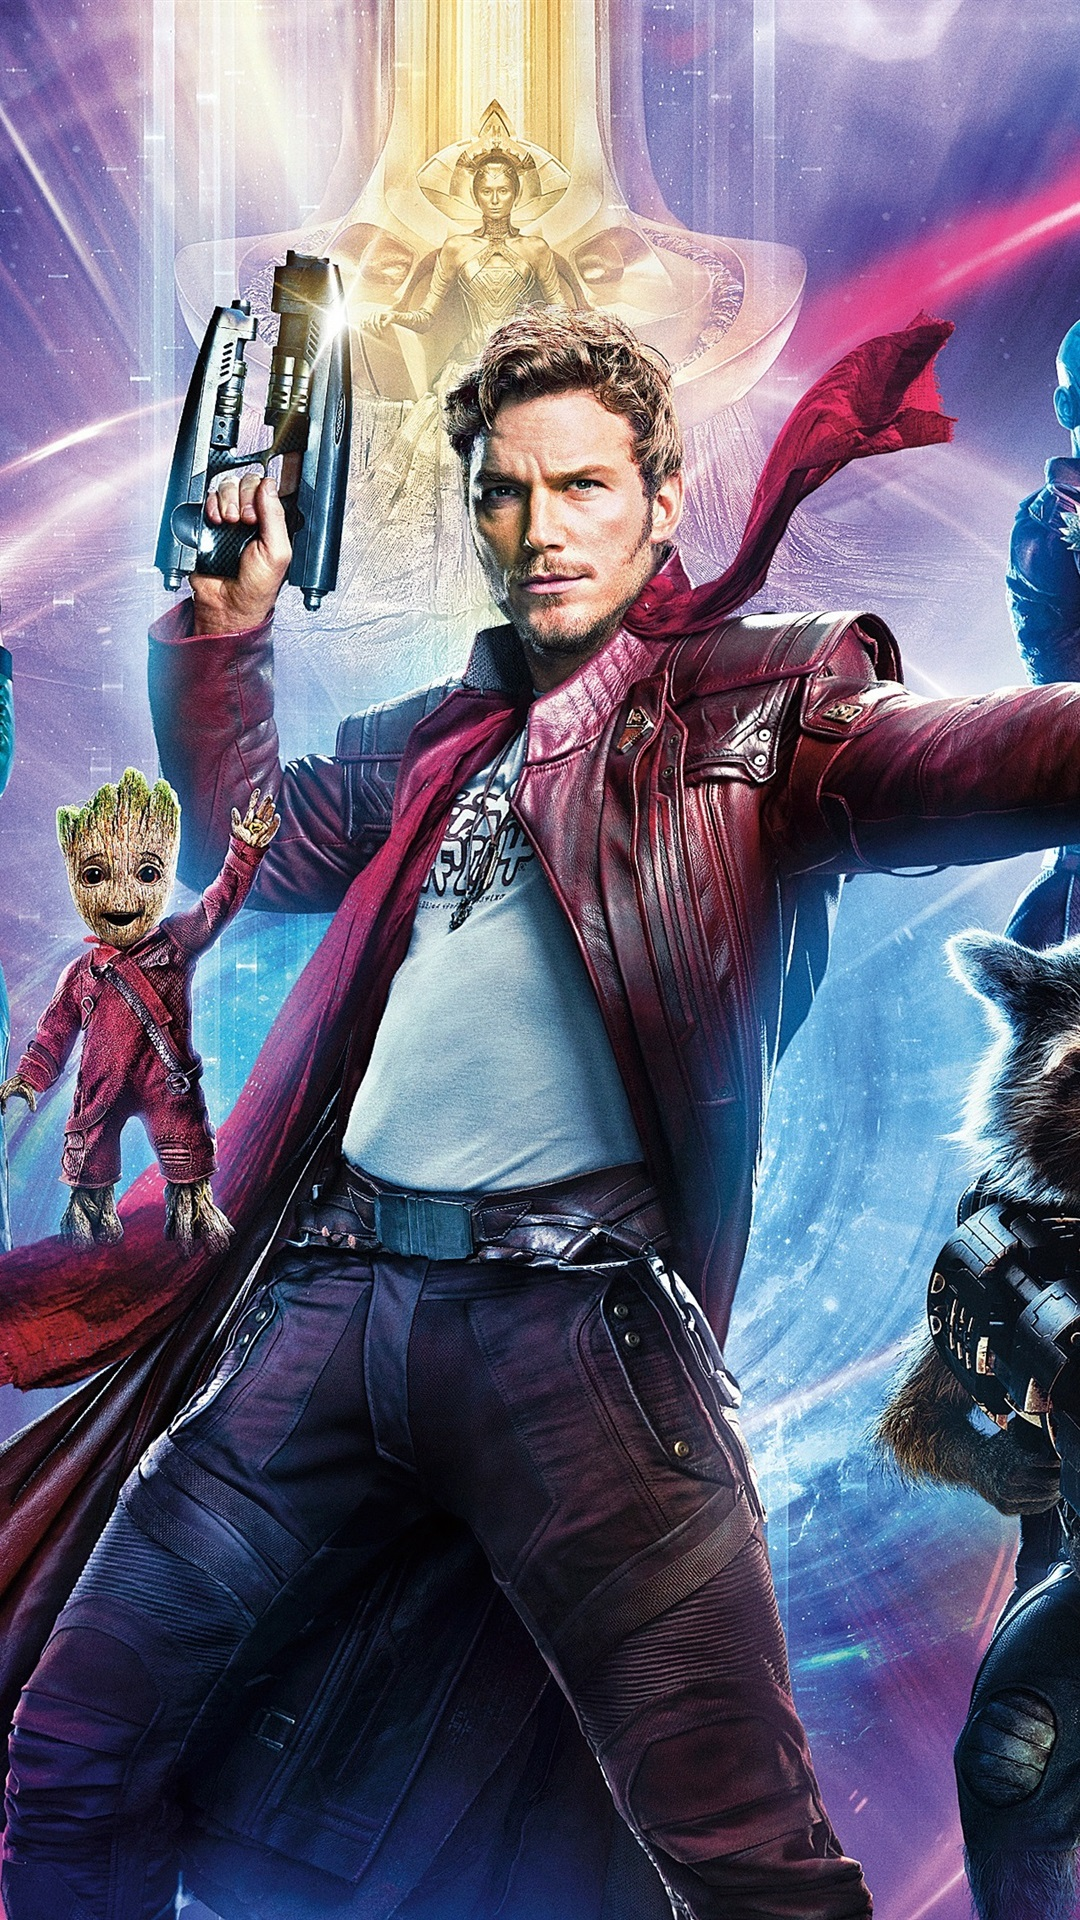 guardians of the galaxy 2 movie hd download